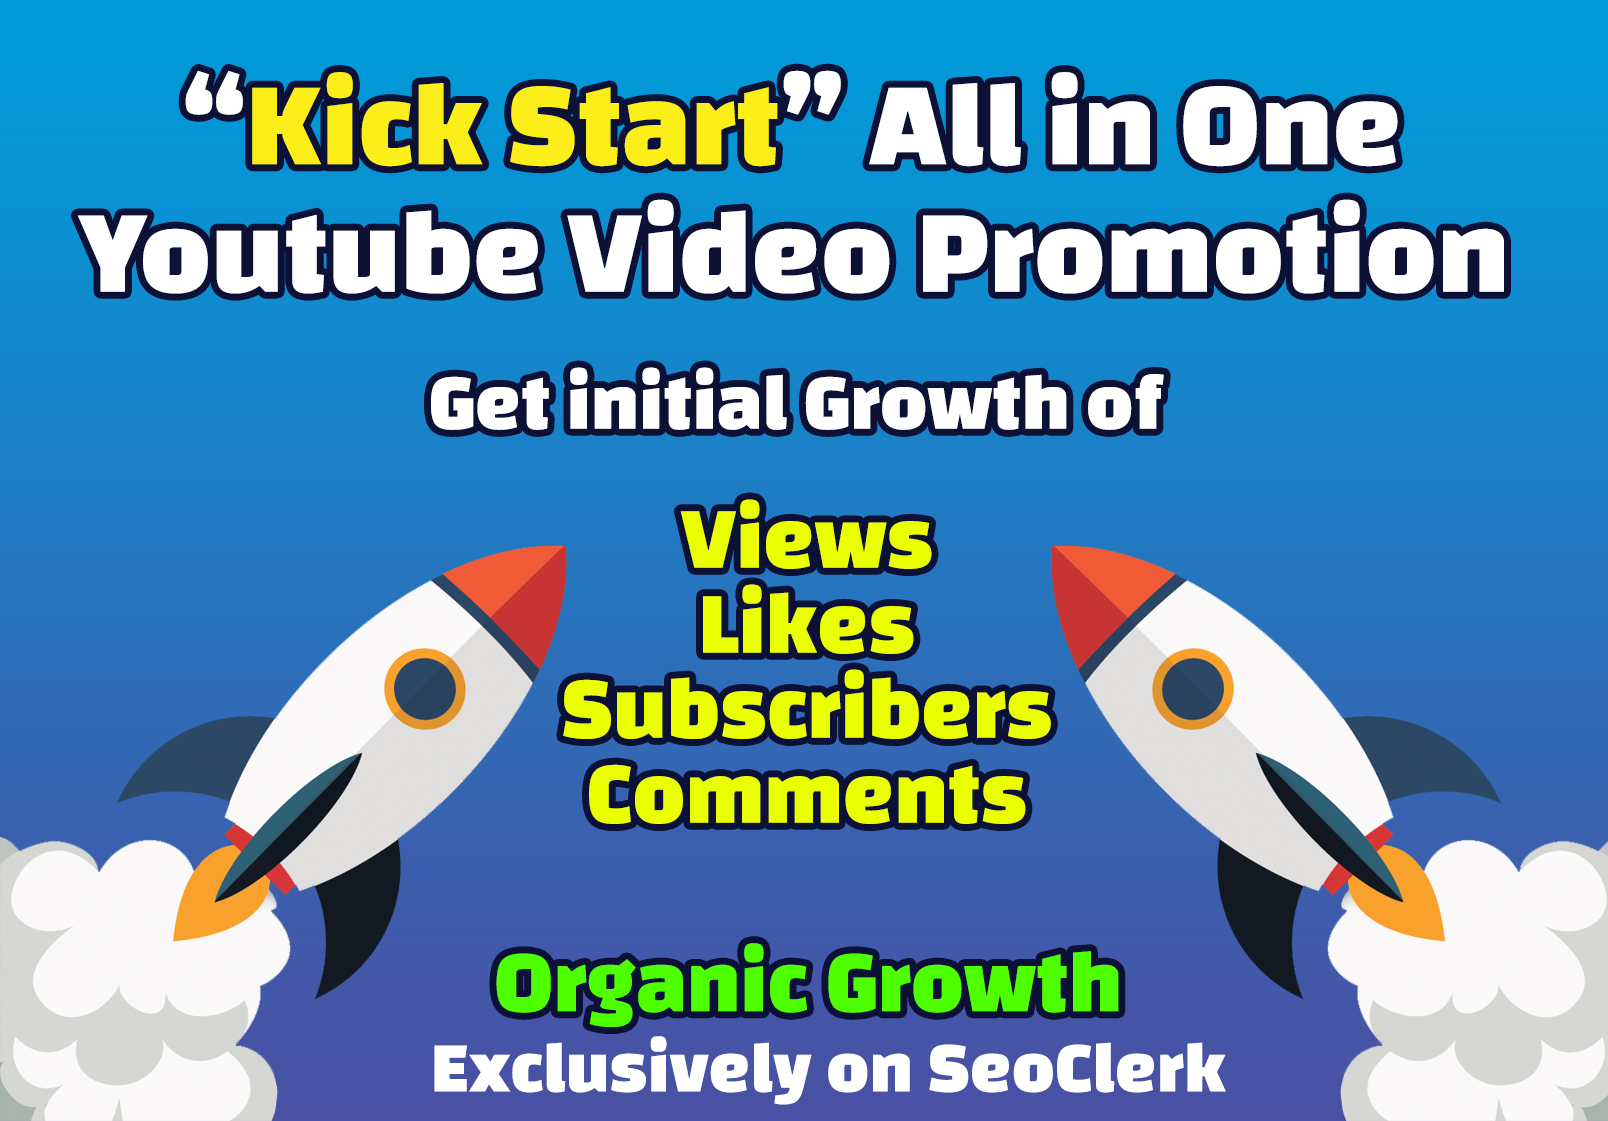 YouTube Video Ranking Kick Starter Promotion - Initial Real YouTube Ranking with Backlinks